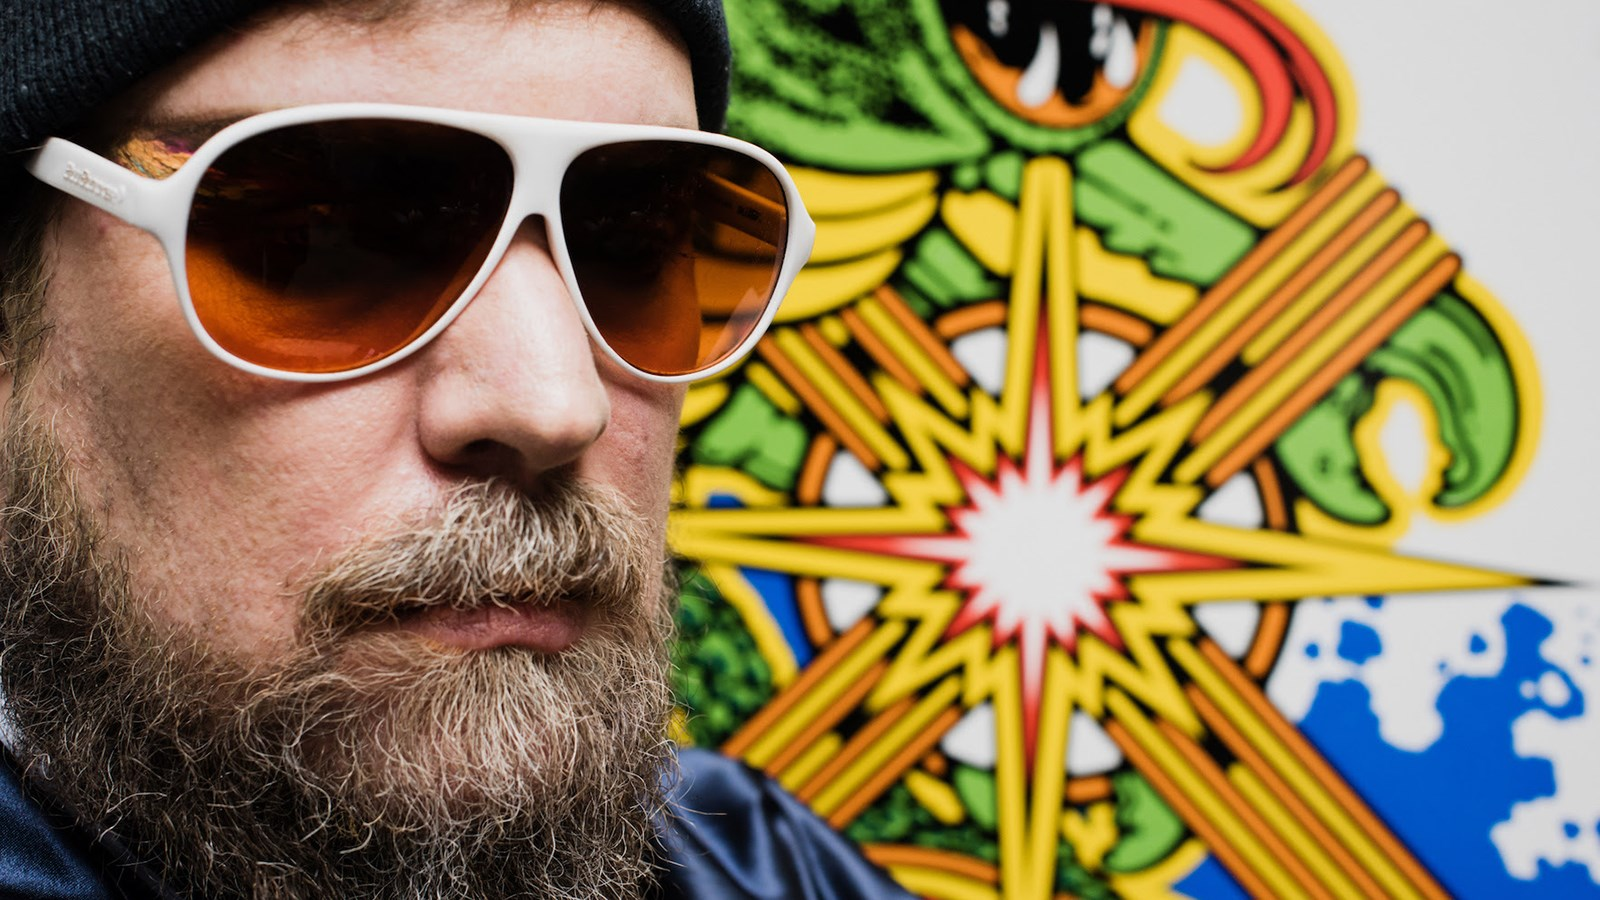 Where To Start With... John Grant